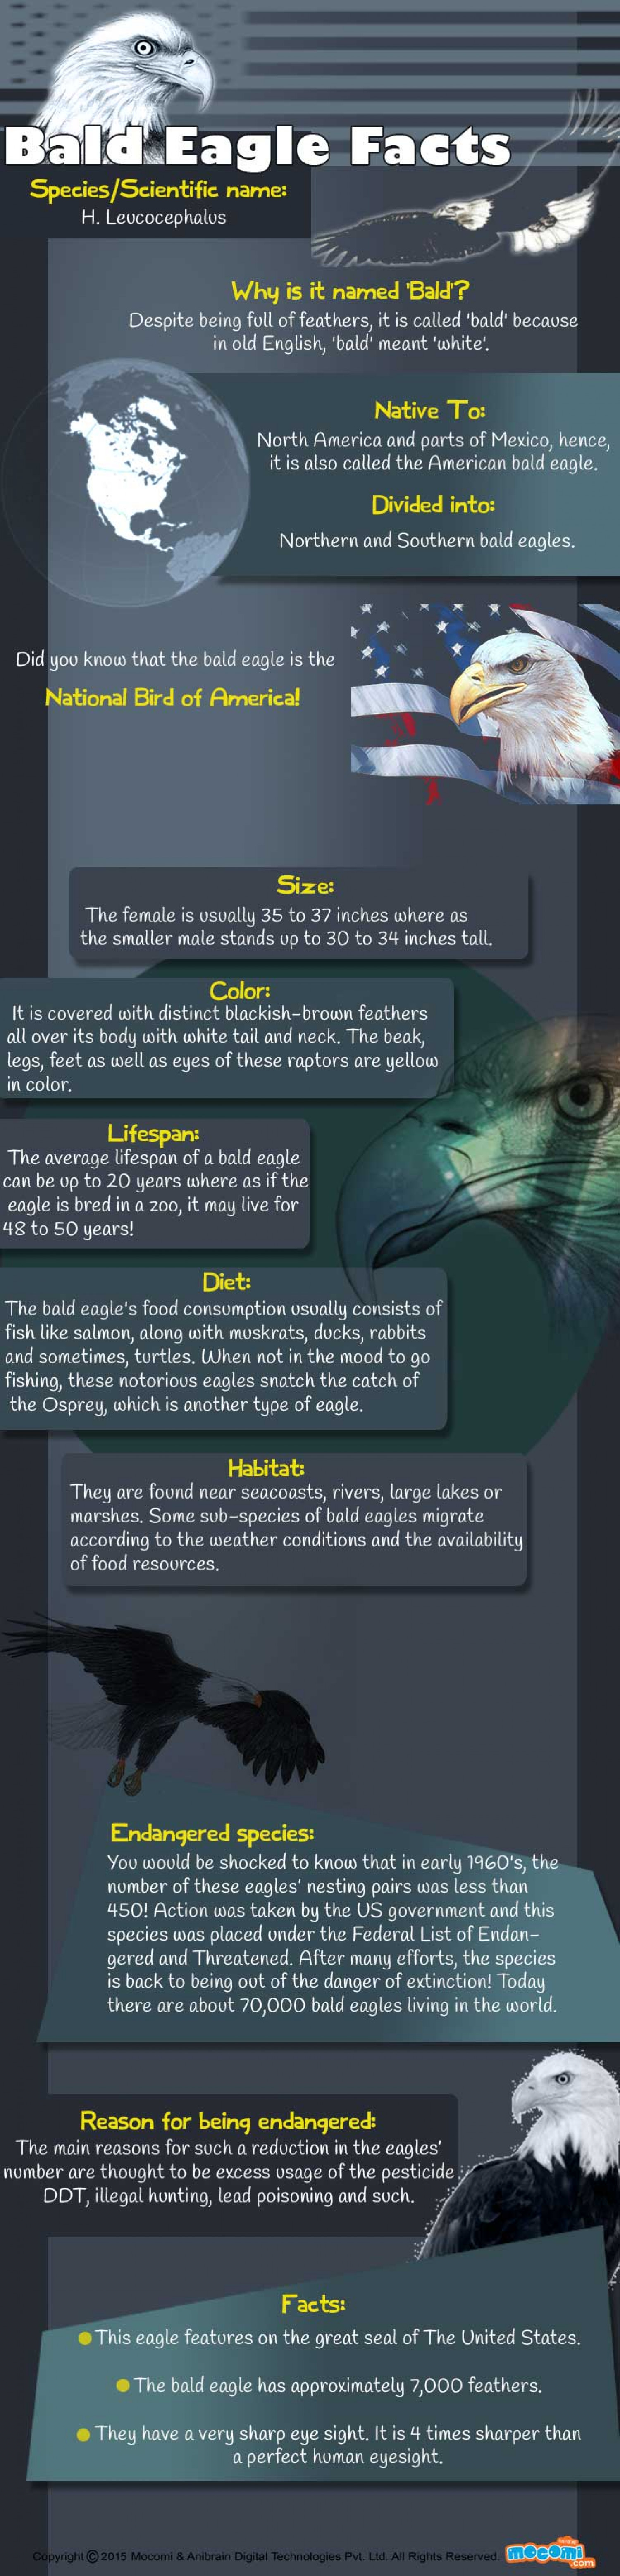 Bald Eagle Fact Sheet Infographic